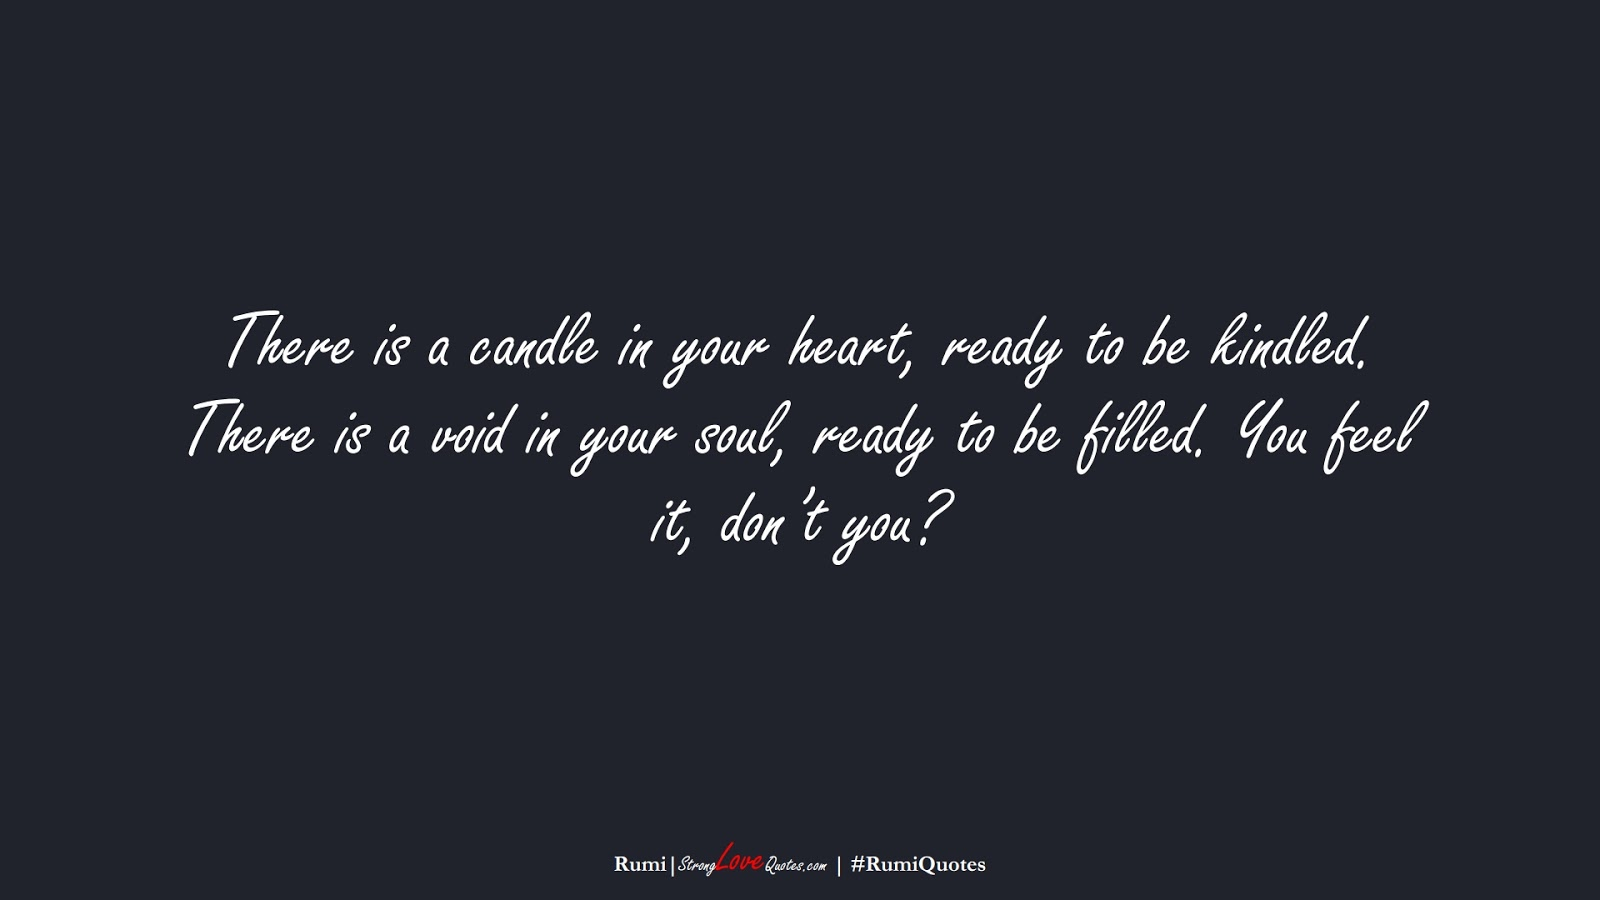 There is a candle in your heart, ready to be kindled. There is a void in your soul, ready to be filled. You feel it, don't you? (Rumi);  #RumiQuotes